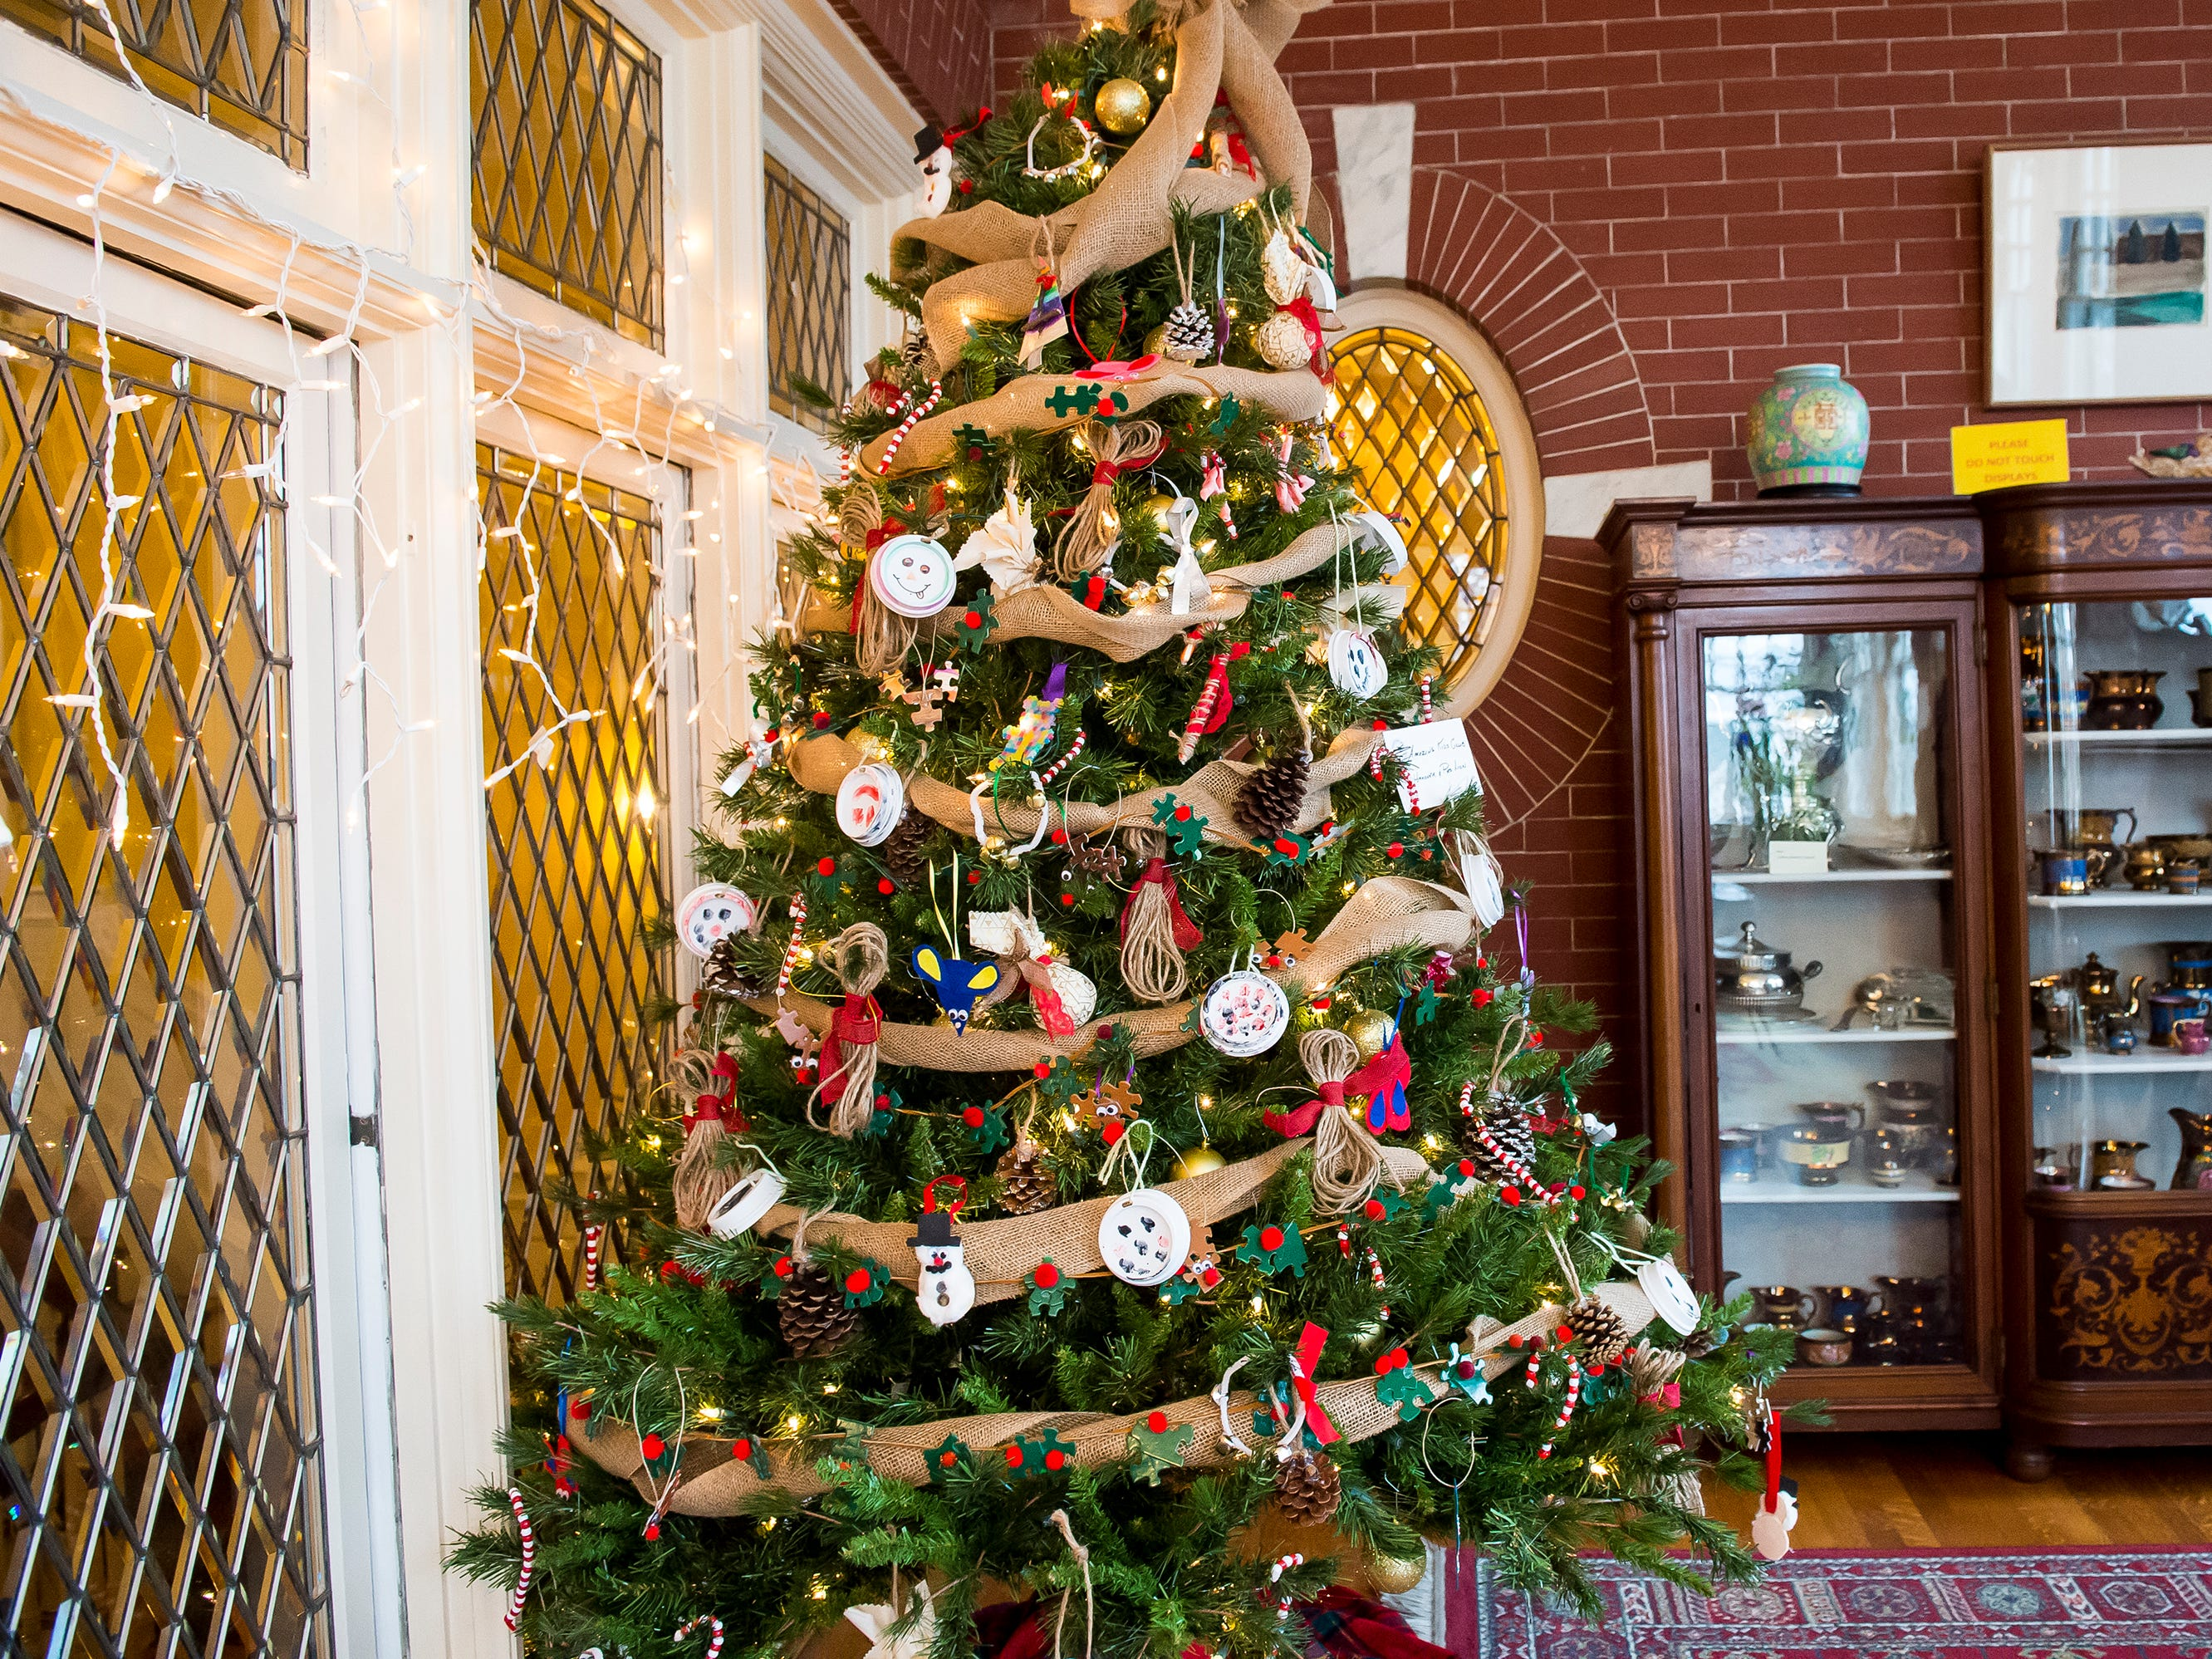 Children at the Amazing Kids Clubs in Hanover and Red Lion made the decorations for this tree at the Warehime-Myers Mansion in Hanover.